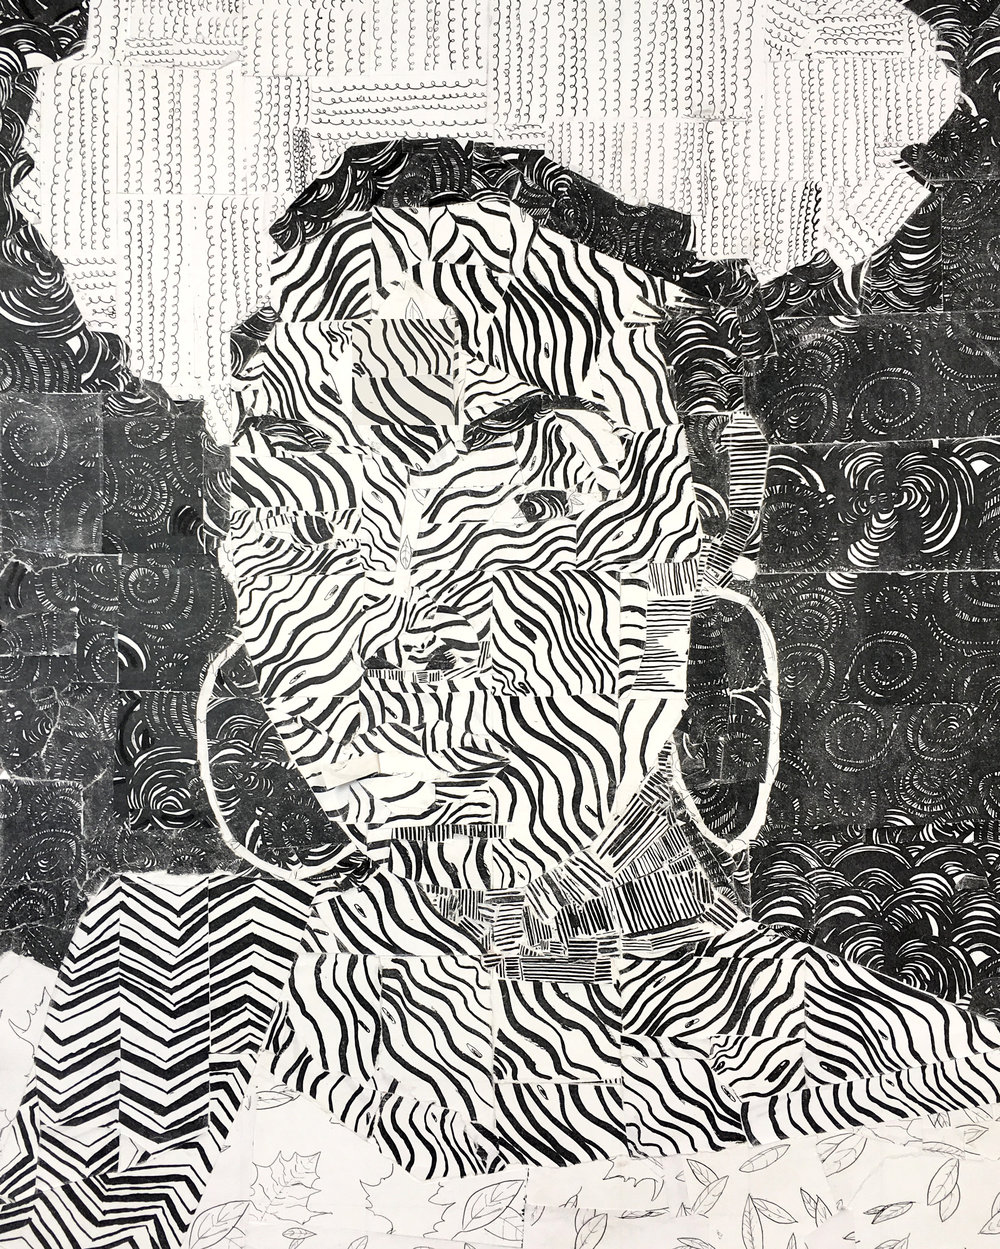 "Drawing 1 ART1620 – Mark Making Self-Portrait Collage, xeroxed copies of drawings, 25"" x 18"" 2018"